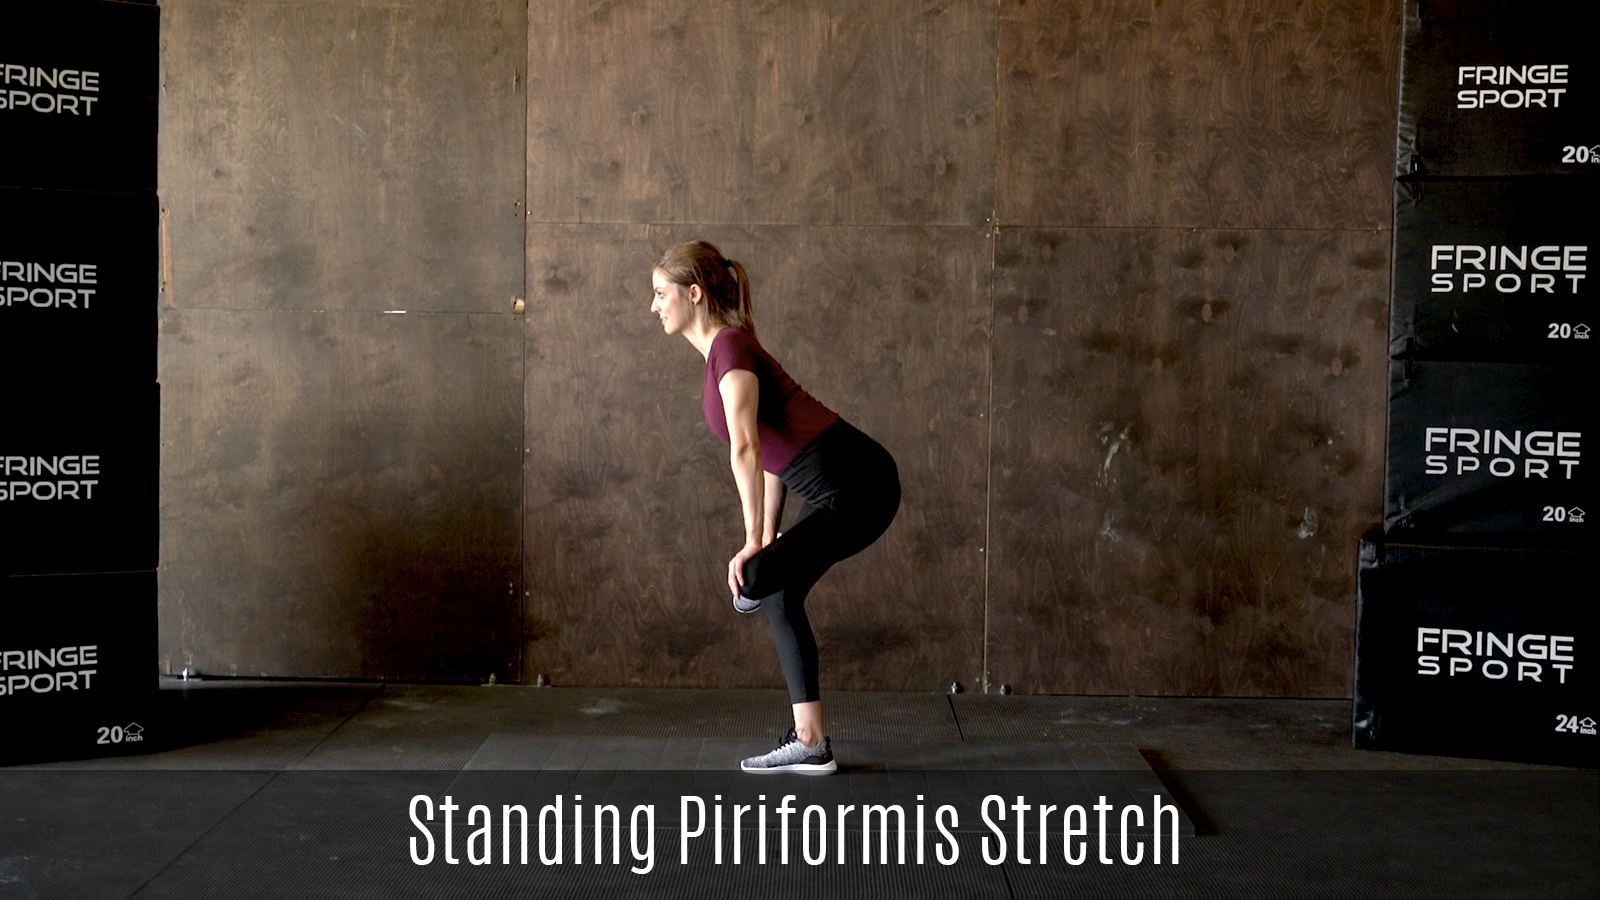 standing piriformis stretch demo